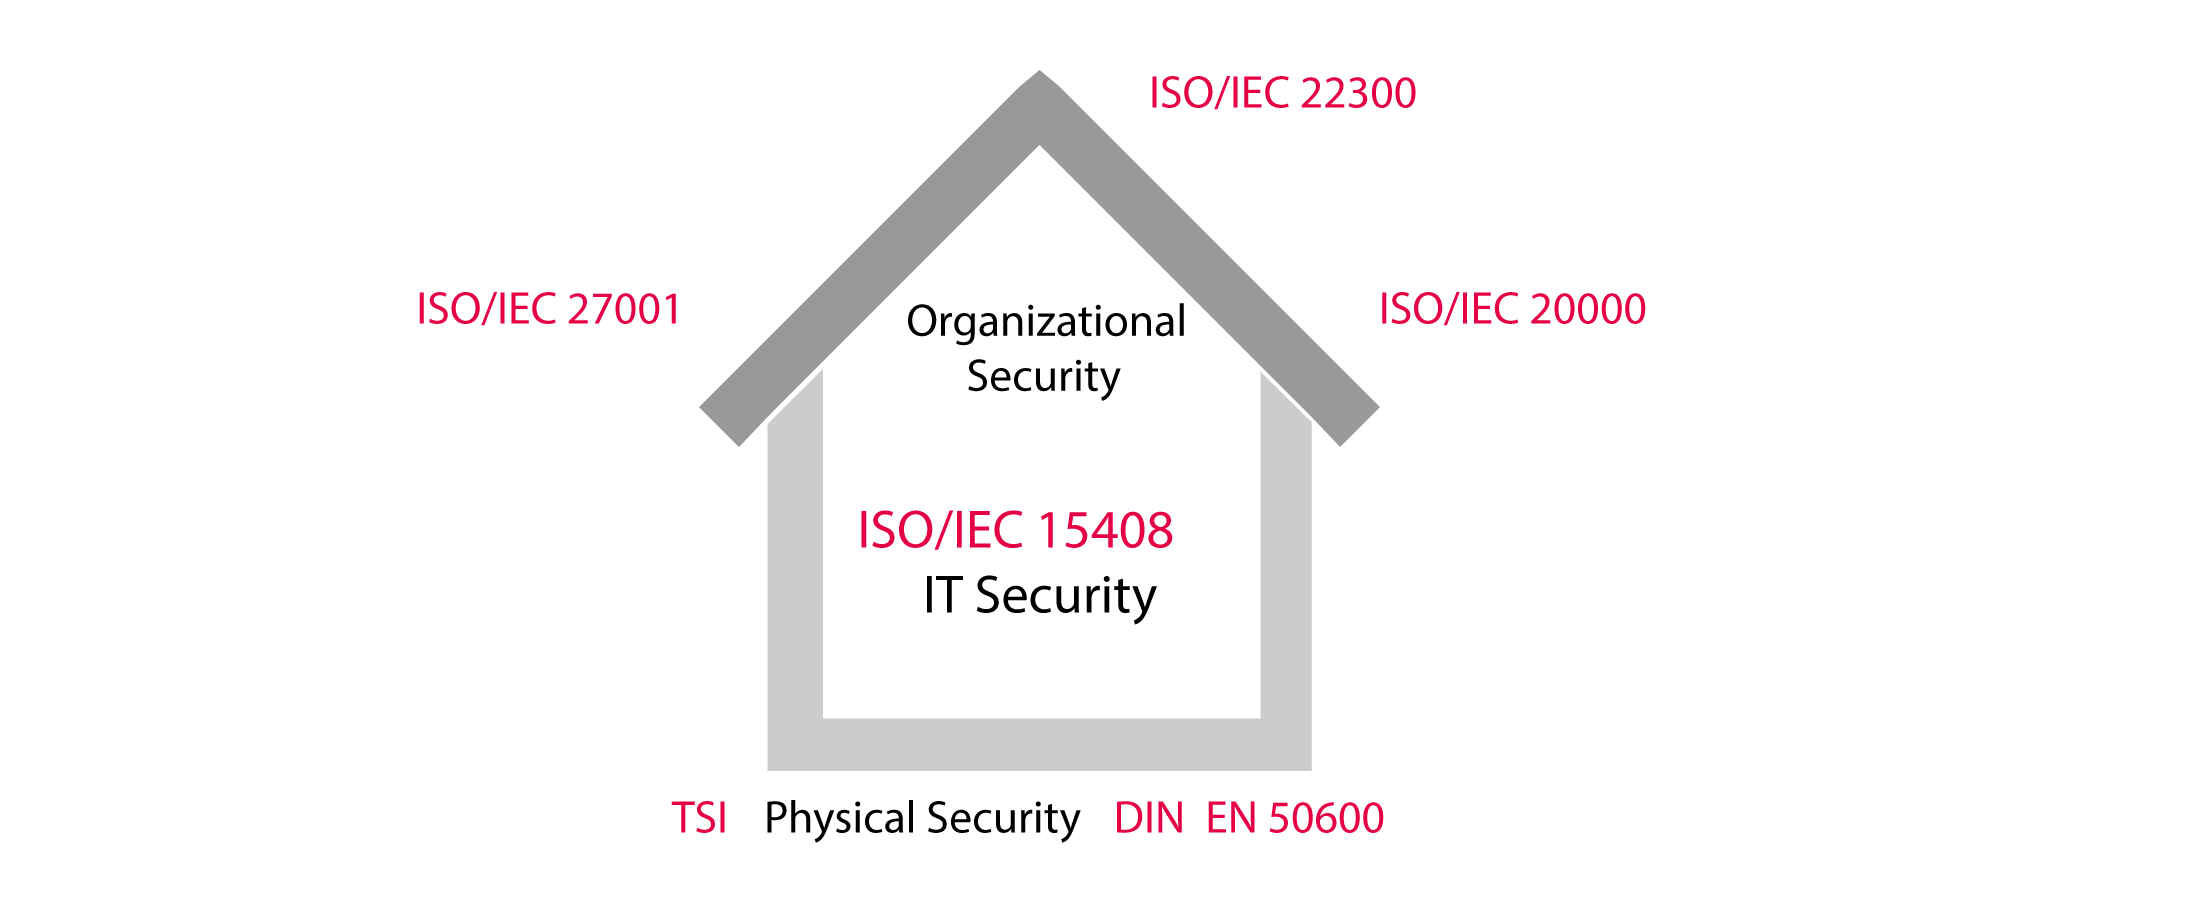 Certification of data centers tvit in addition for providers of colocation and cloud infrastructure the isoiec 20000 is applied as well covering the it service management 1betcityfo Images